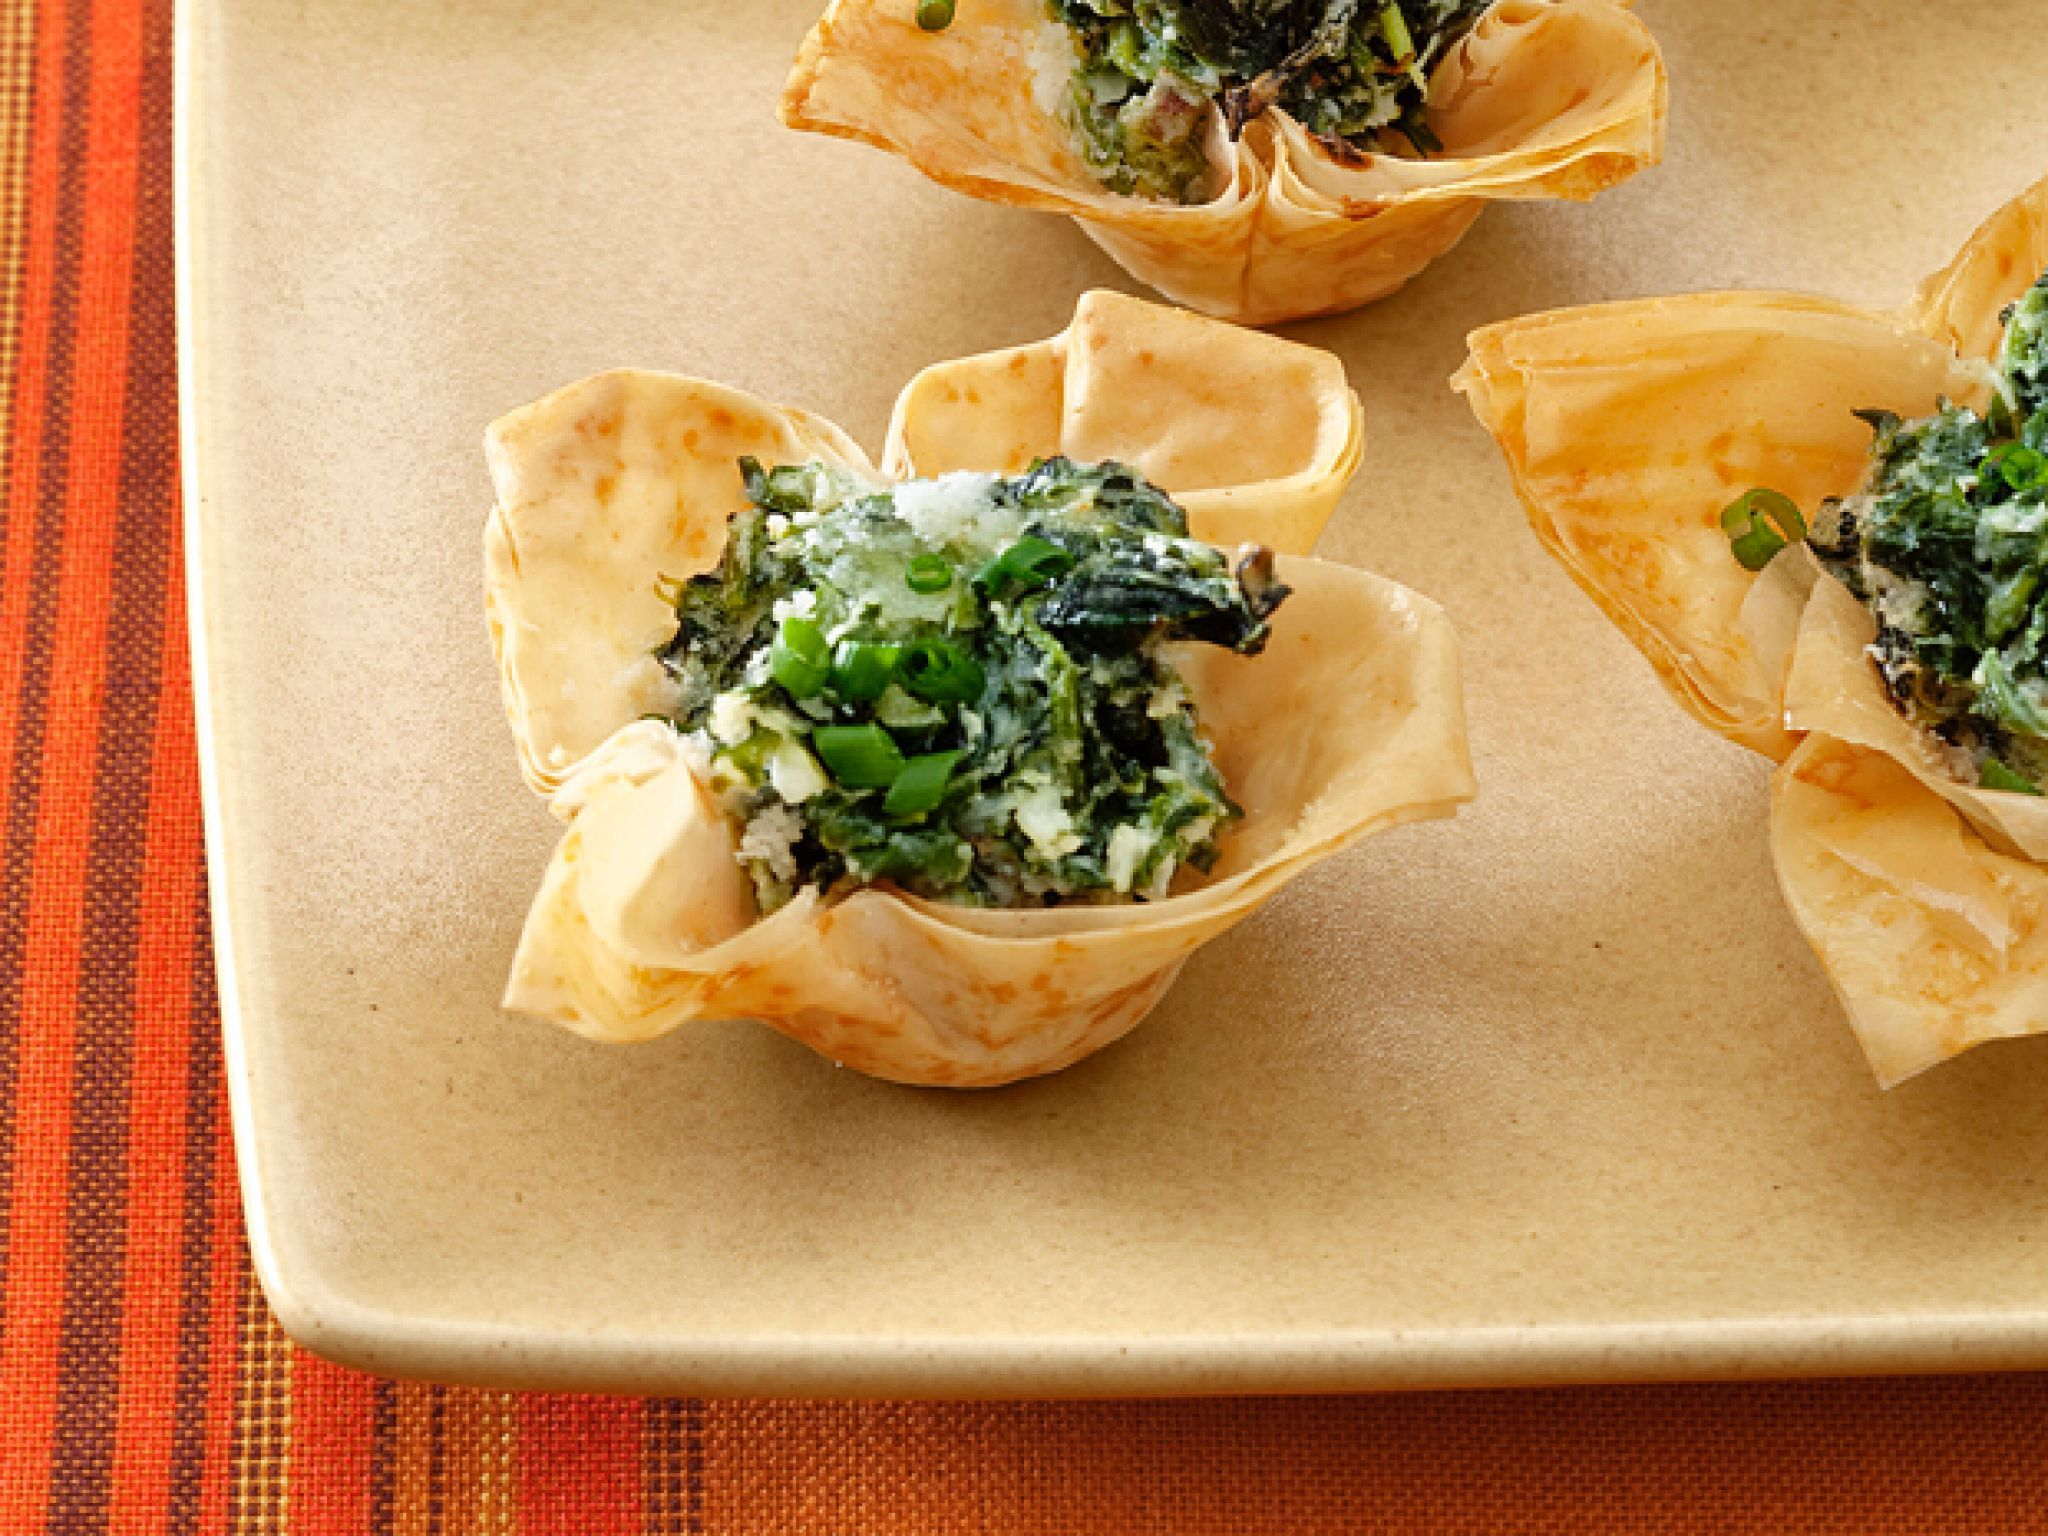 Easy and elegant holiday appetizer recipes food network goat spinach and goat cheese tartlets learn how to make easy yet elegant holiday appetizers for your holiday party this season from food network forumfinder Gallery